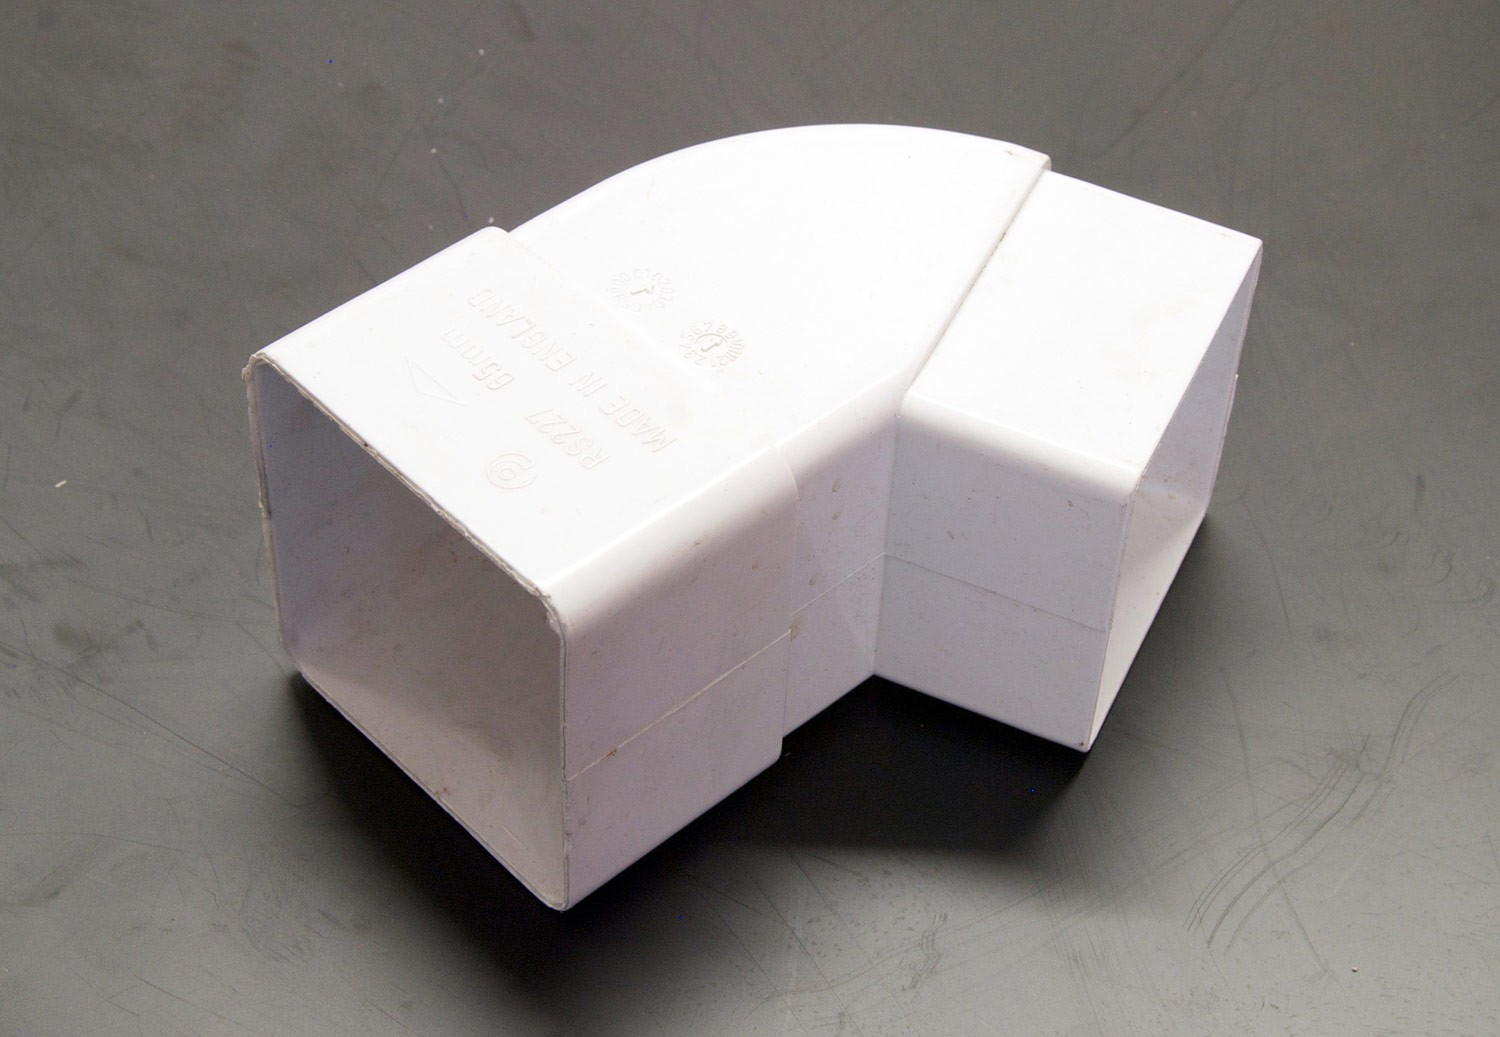 92.5 Degree Bend Square (White)